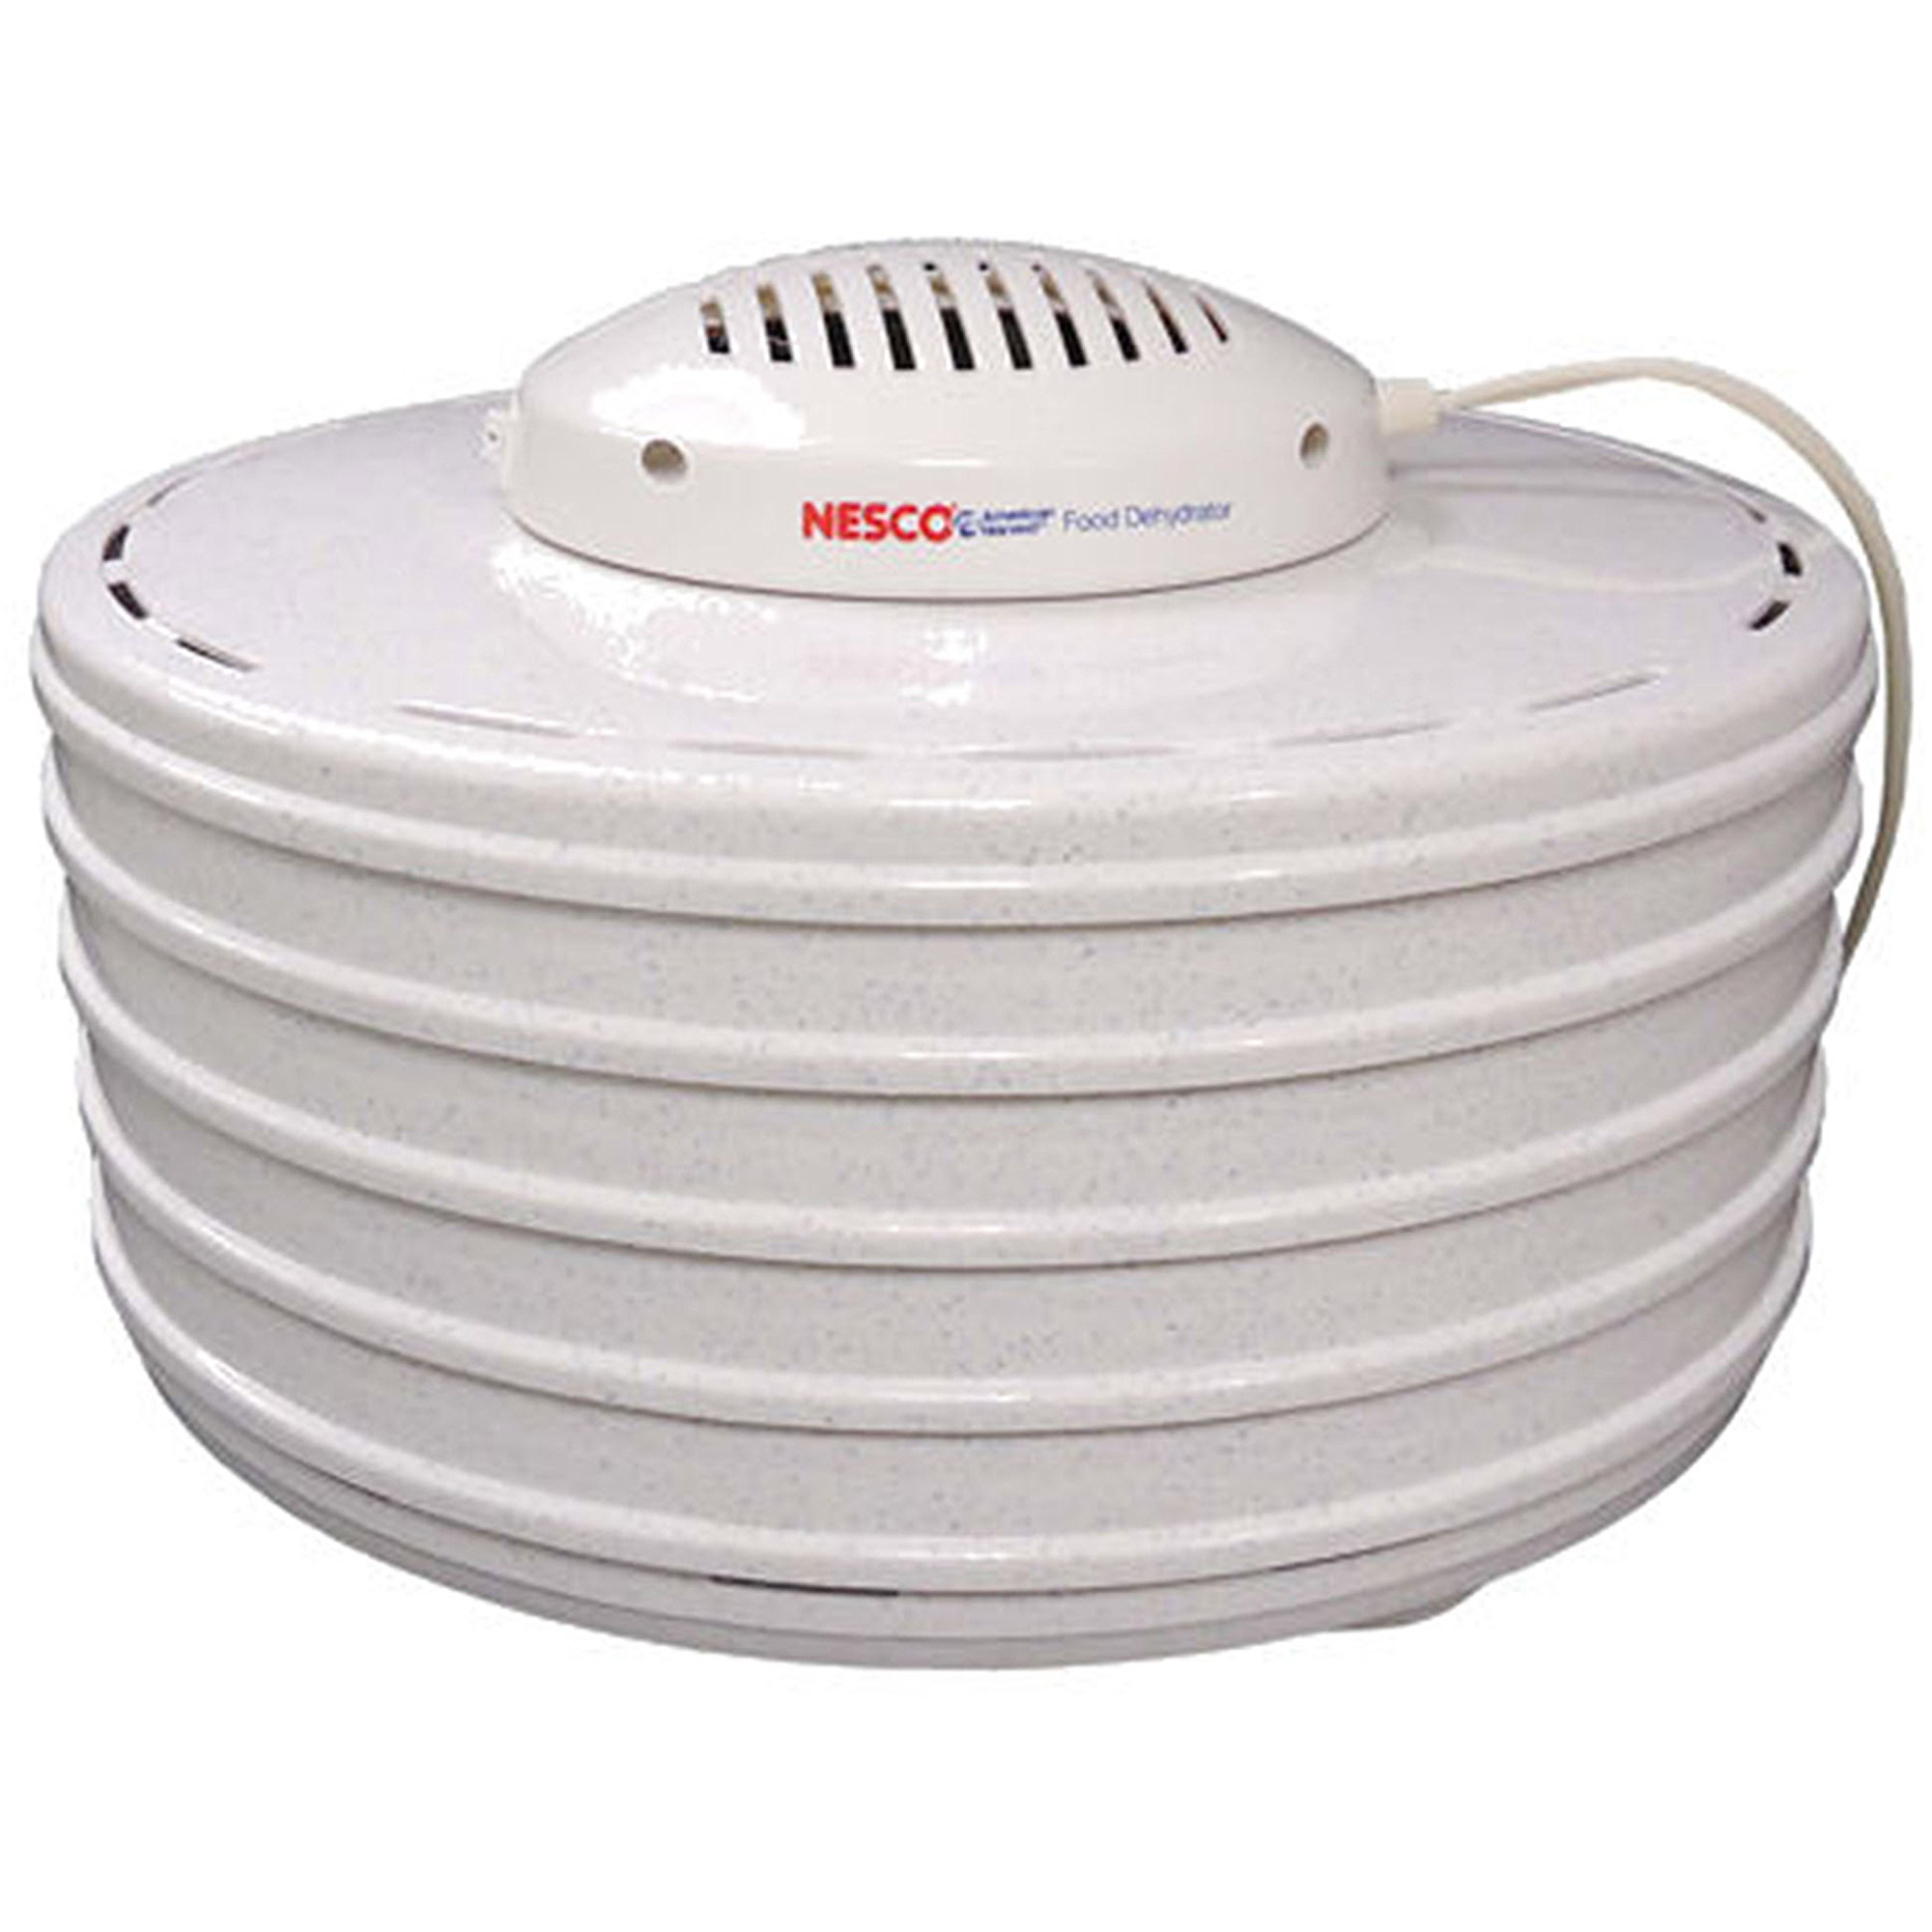 Nesco 500-Watt Food Dehydrator, FD-39P